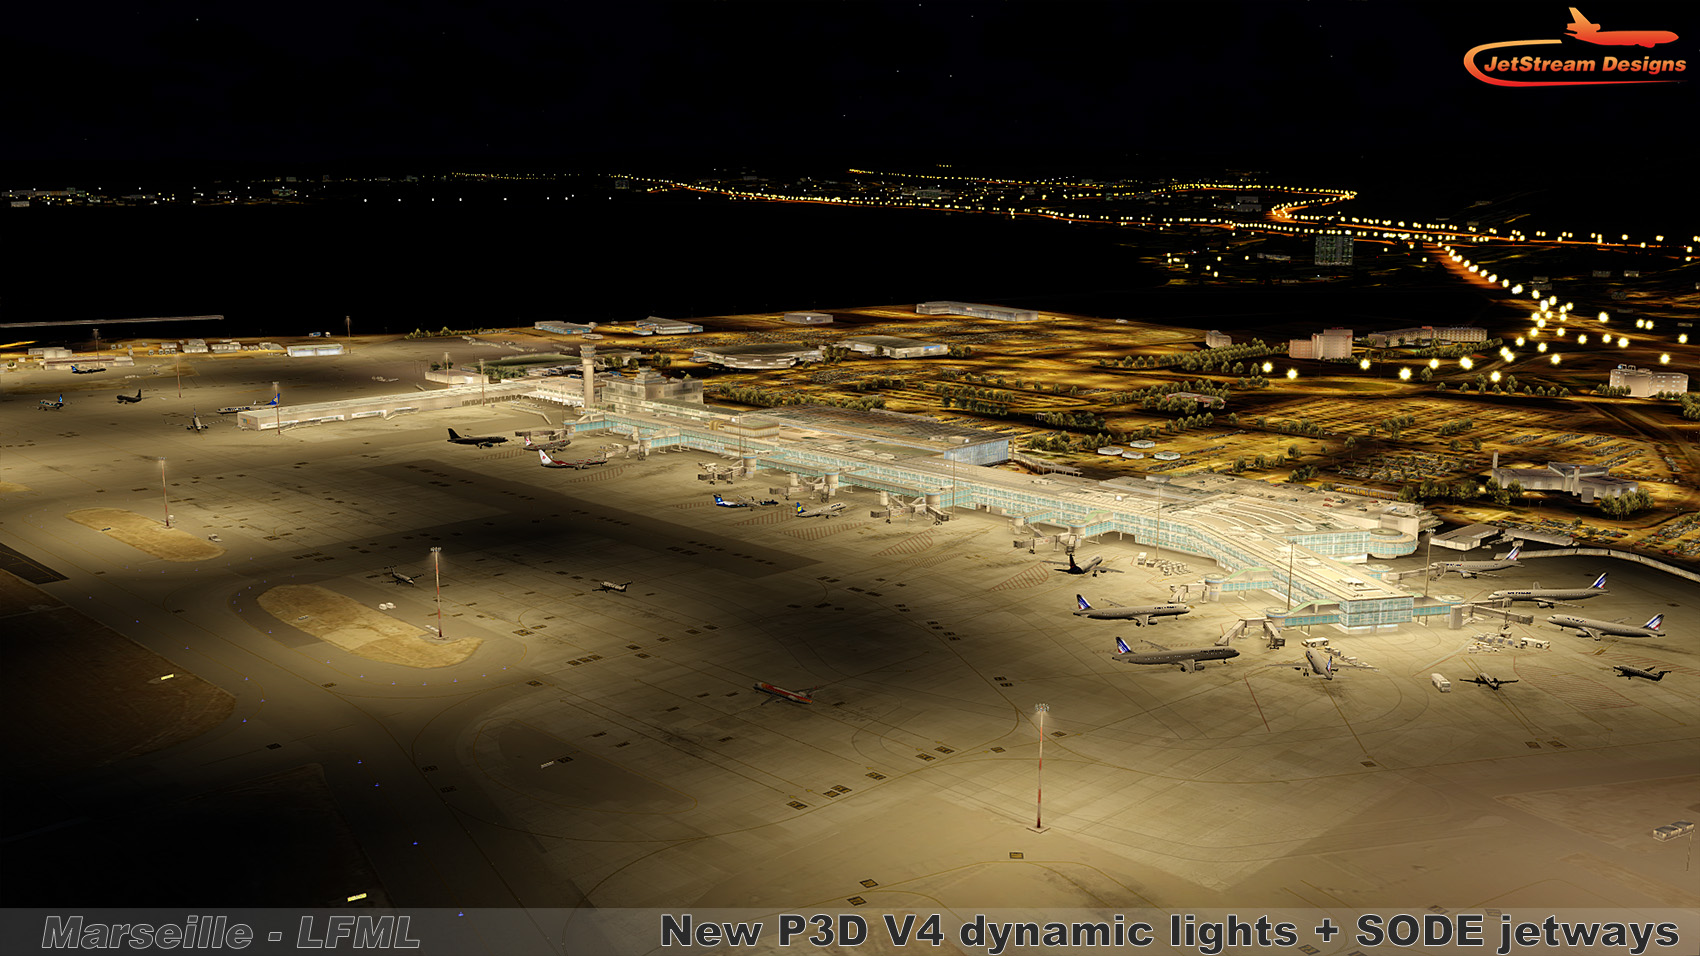 JETSTREAM DESIGNS - MARSEILLE PROVENCE AIRPORT LFML X 2013 FSX P3D